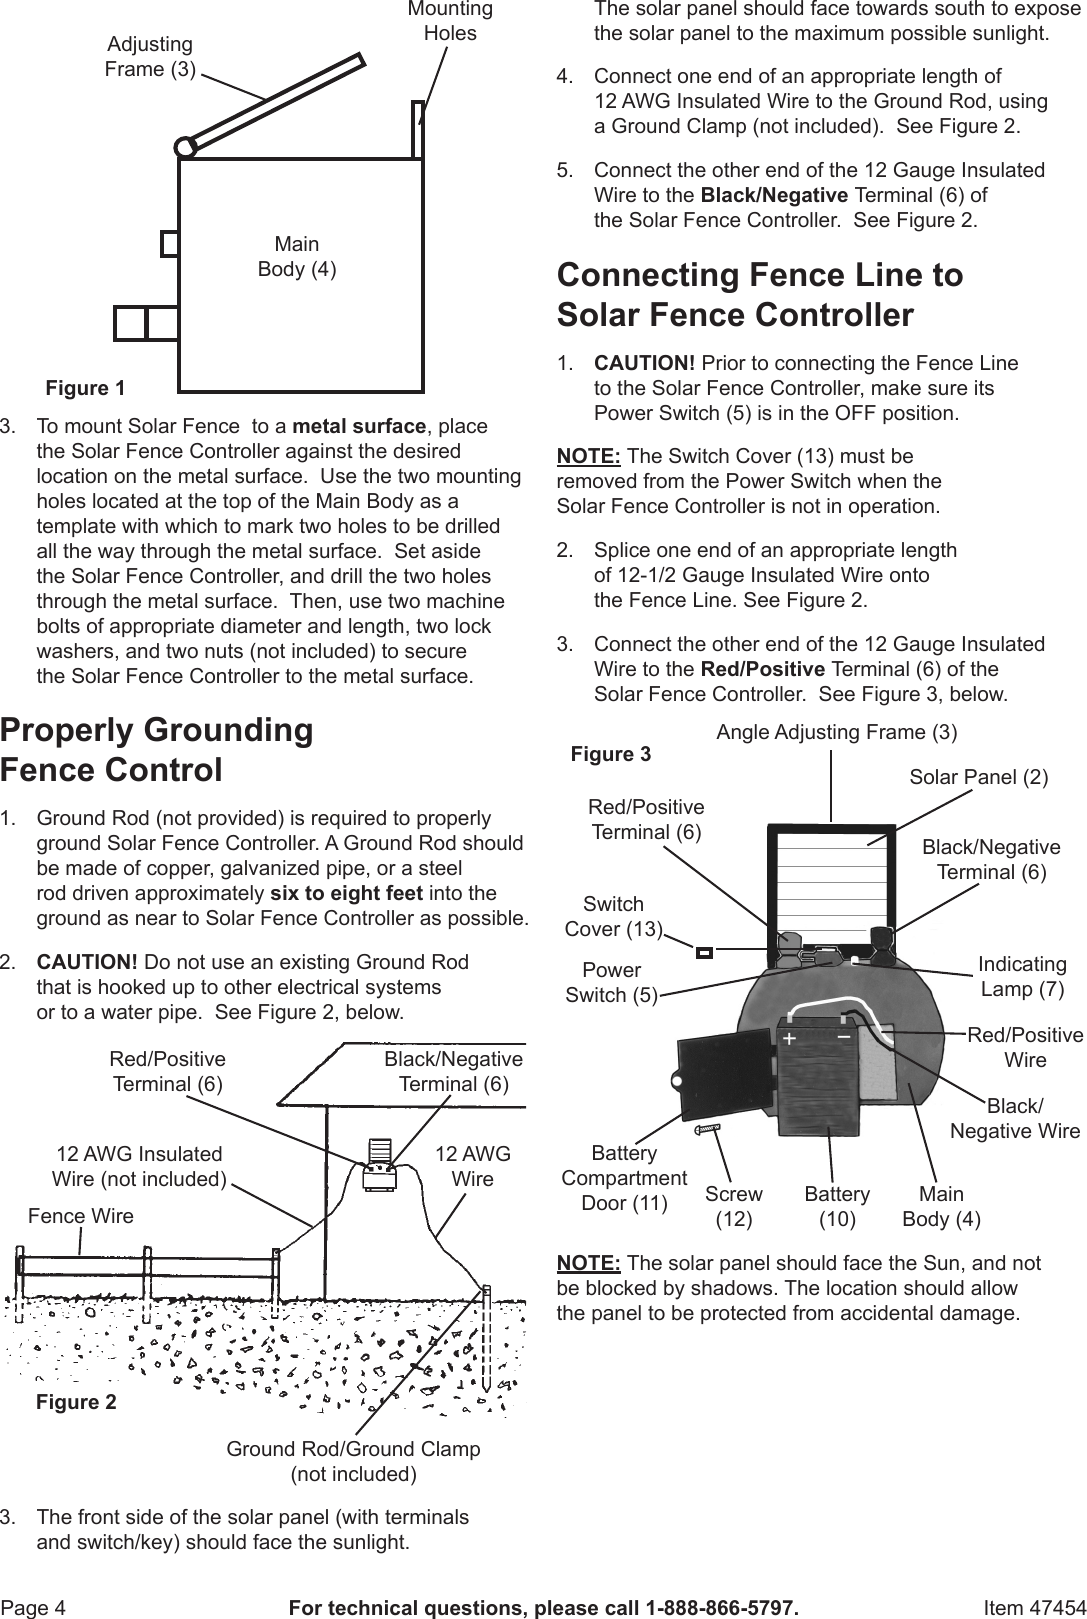 Harbor Freight Adjustable Solar Electric Fence Controller Product Manual Charger Wiring Diagram Page 4 Of 8